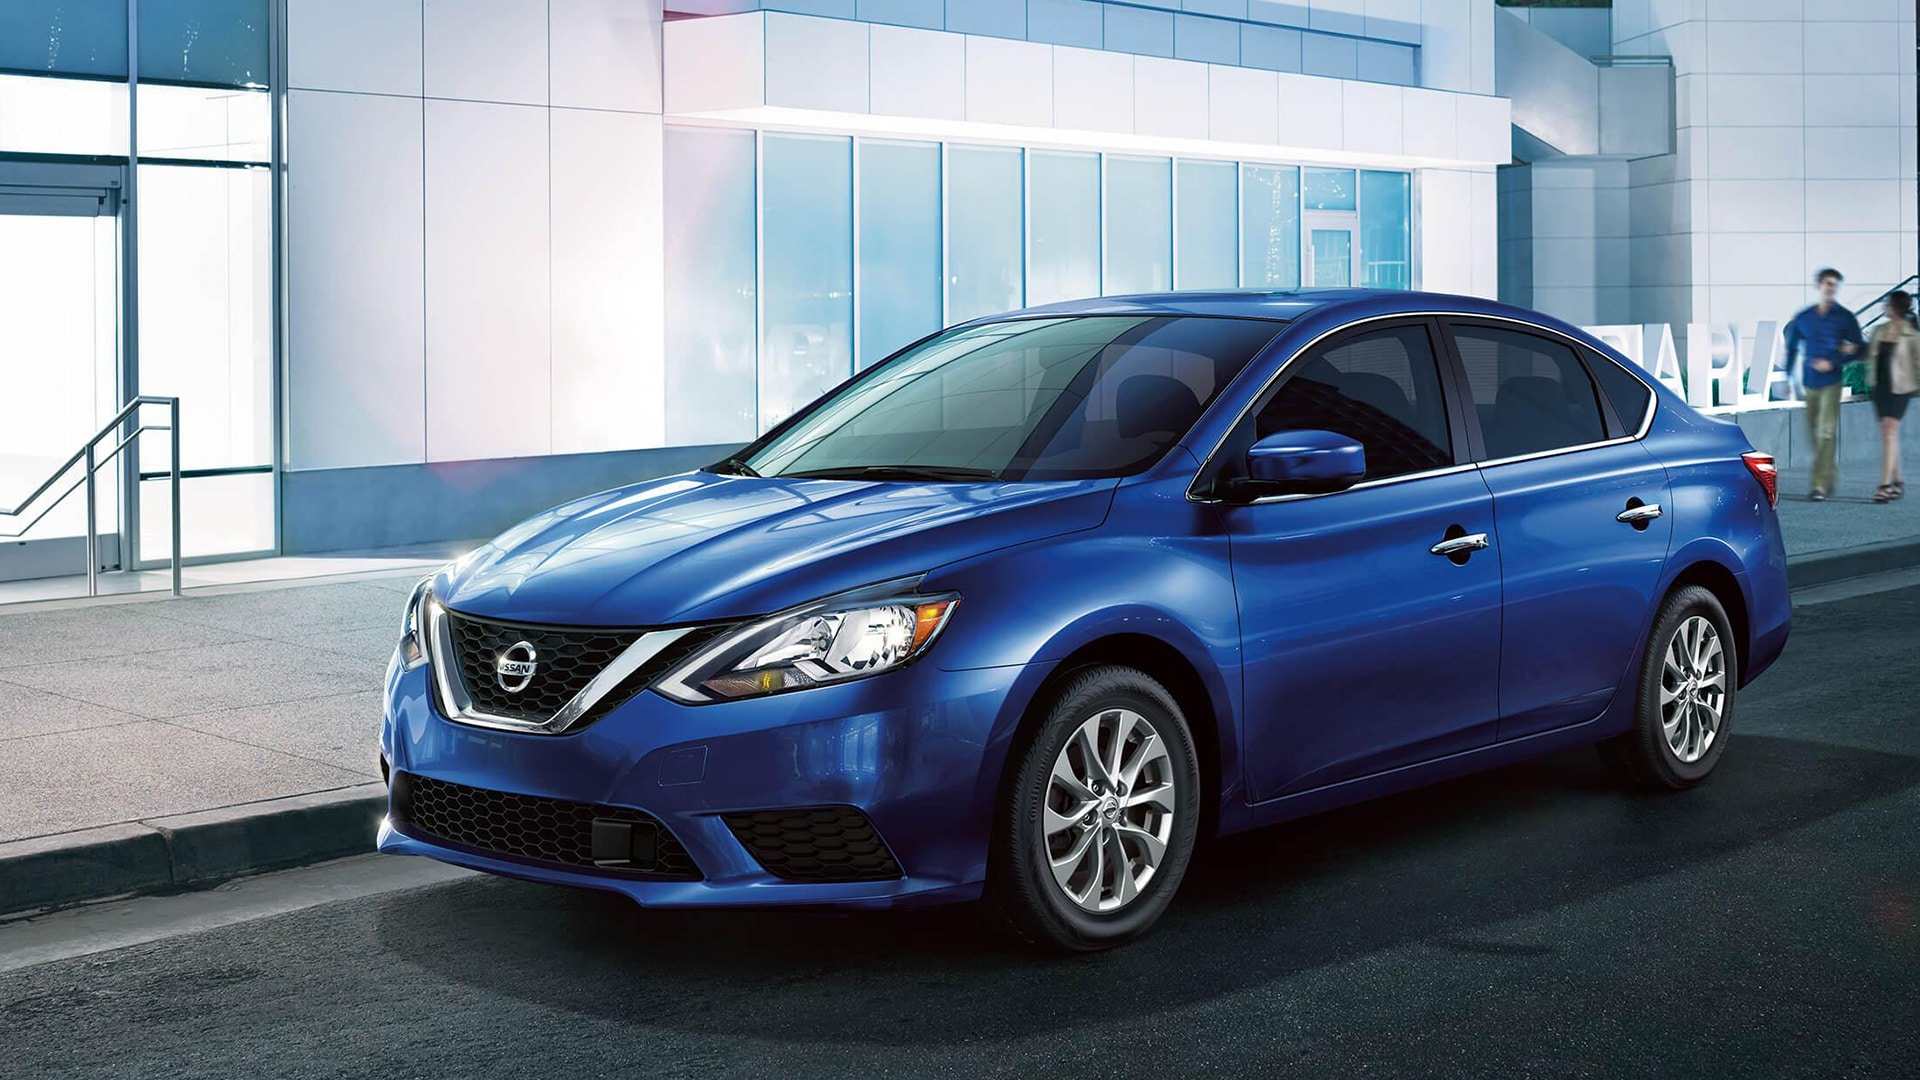 Used Nissan Sentra For Sale in Hummels Wharf, PA